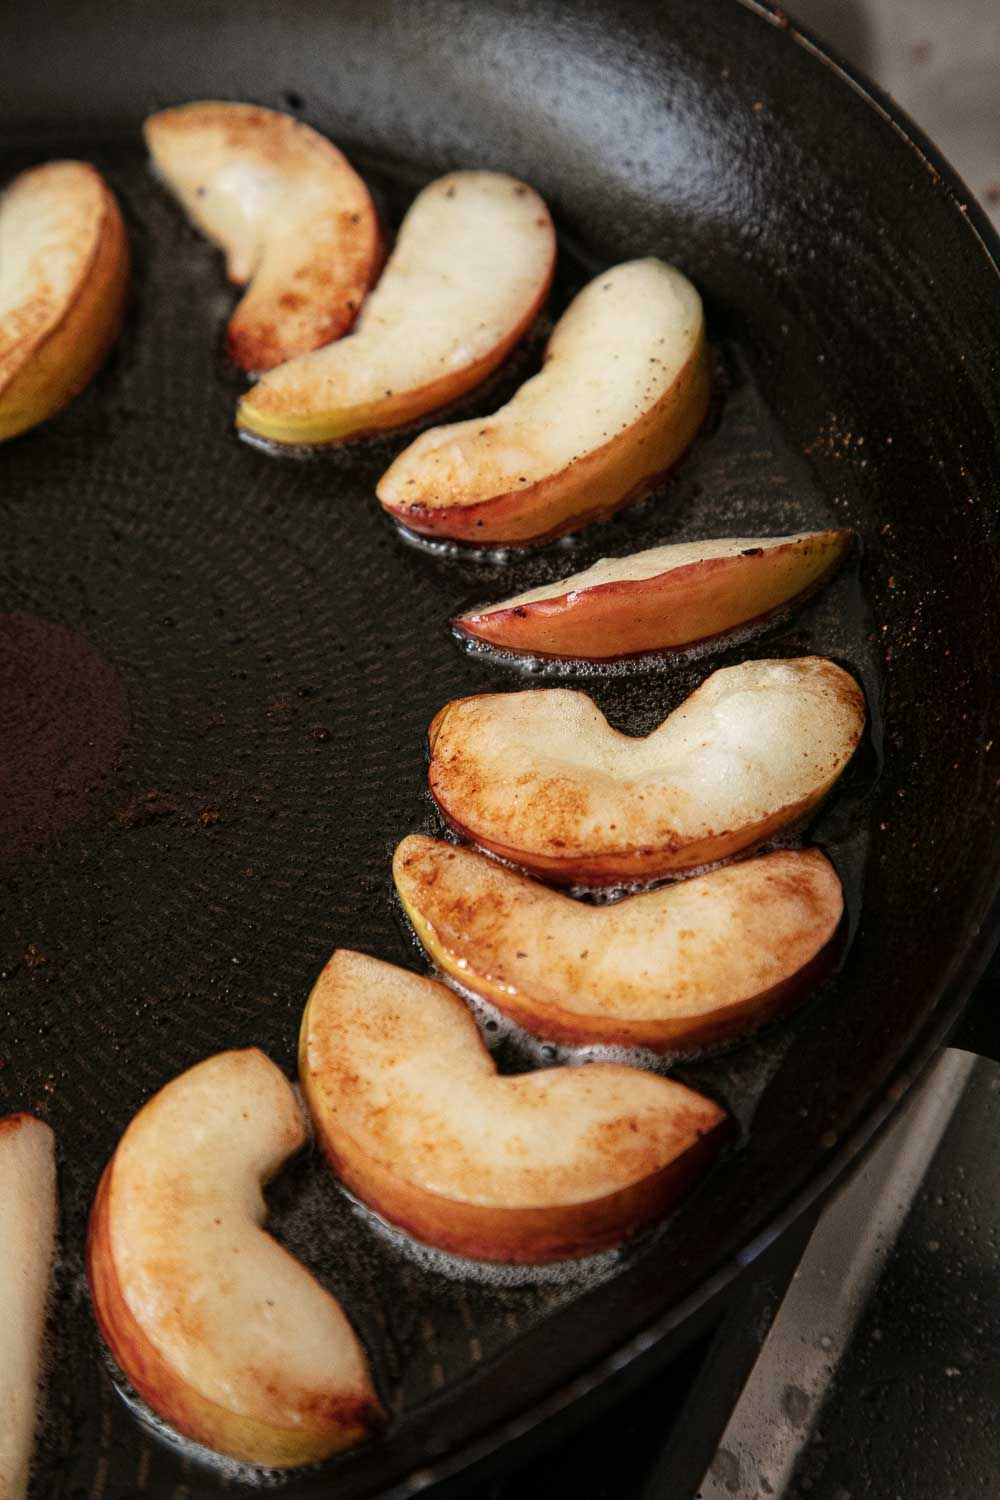 Apple slices frying in a frying pan.